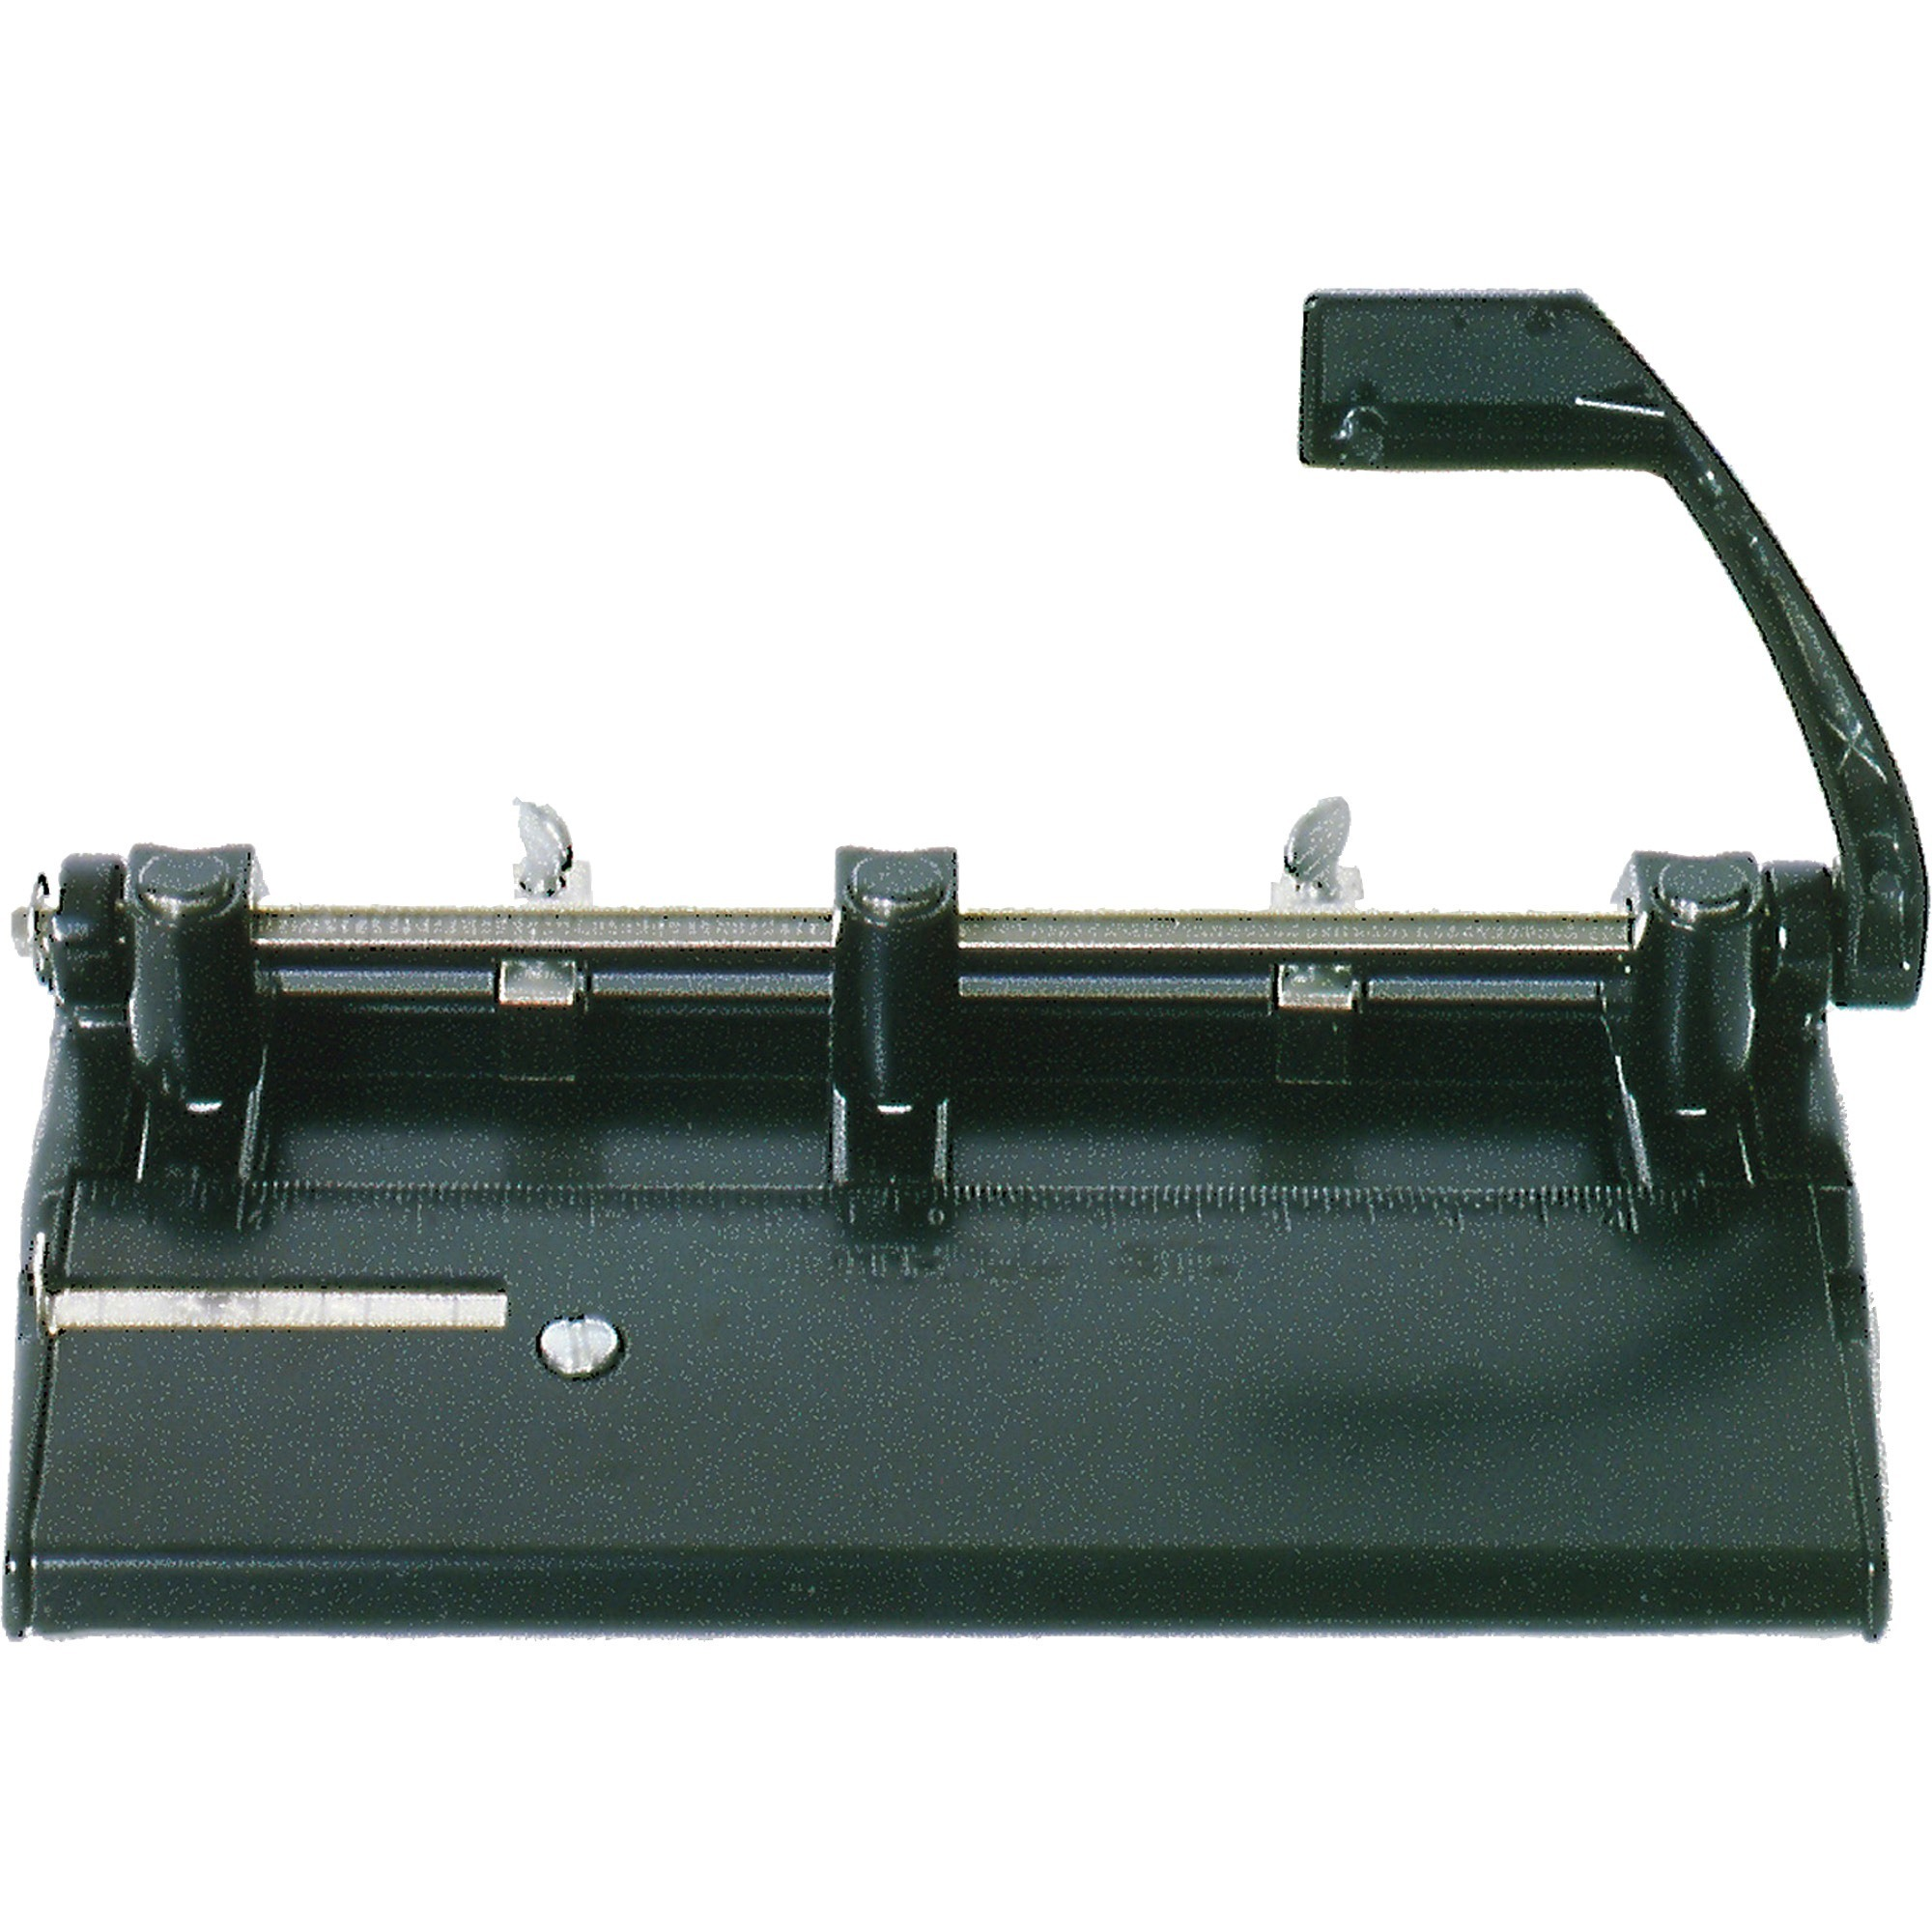 MAT5335B Master Heavy-Duty 3 Hole Punch Adjustable Paper Punch